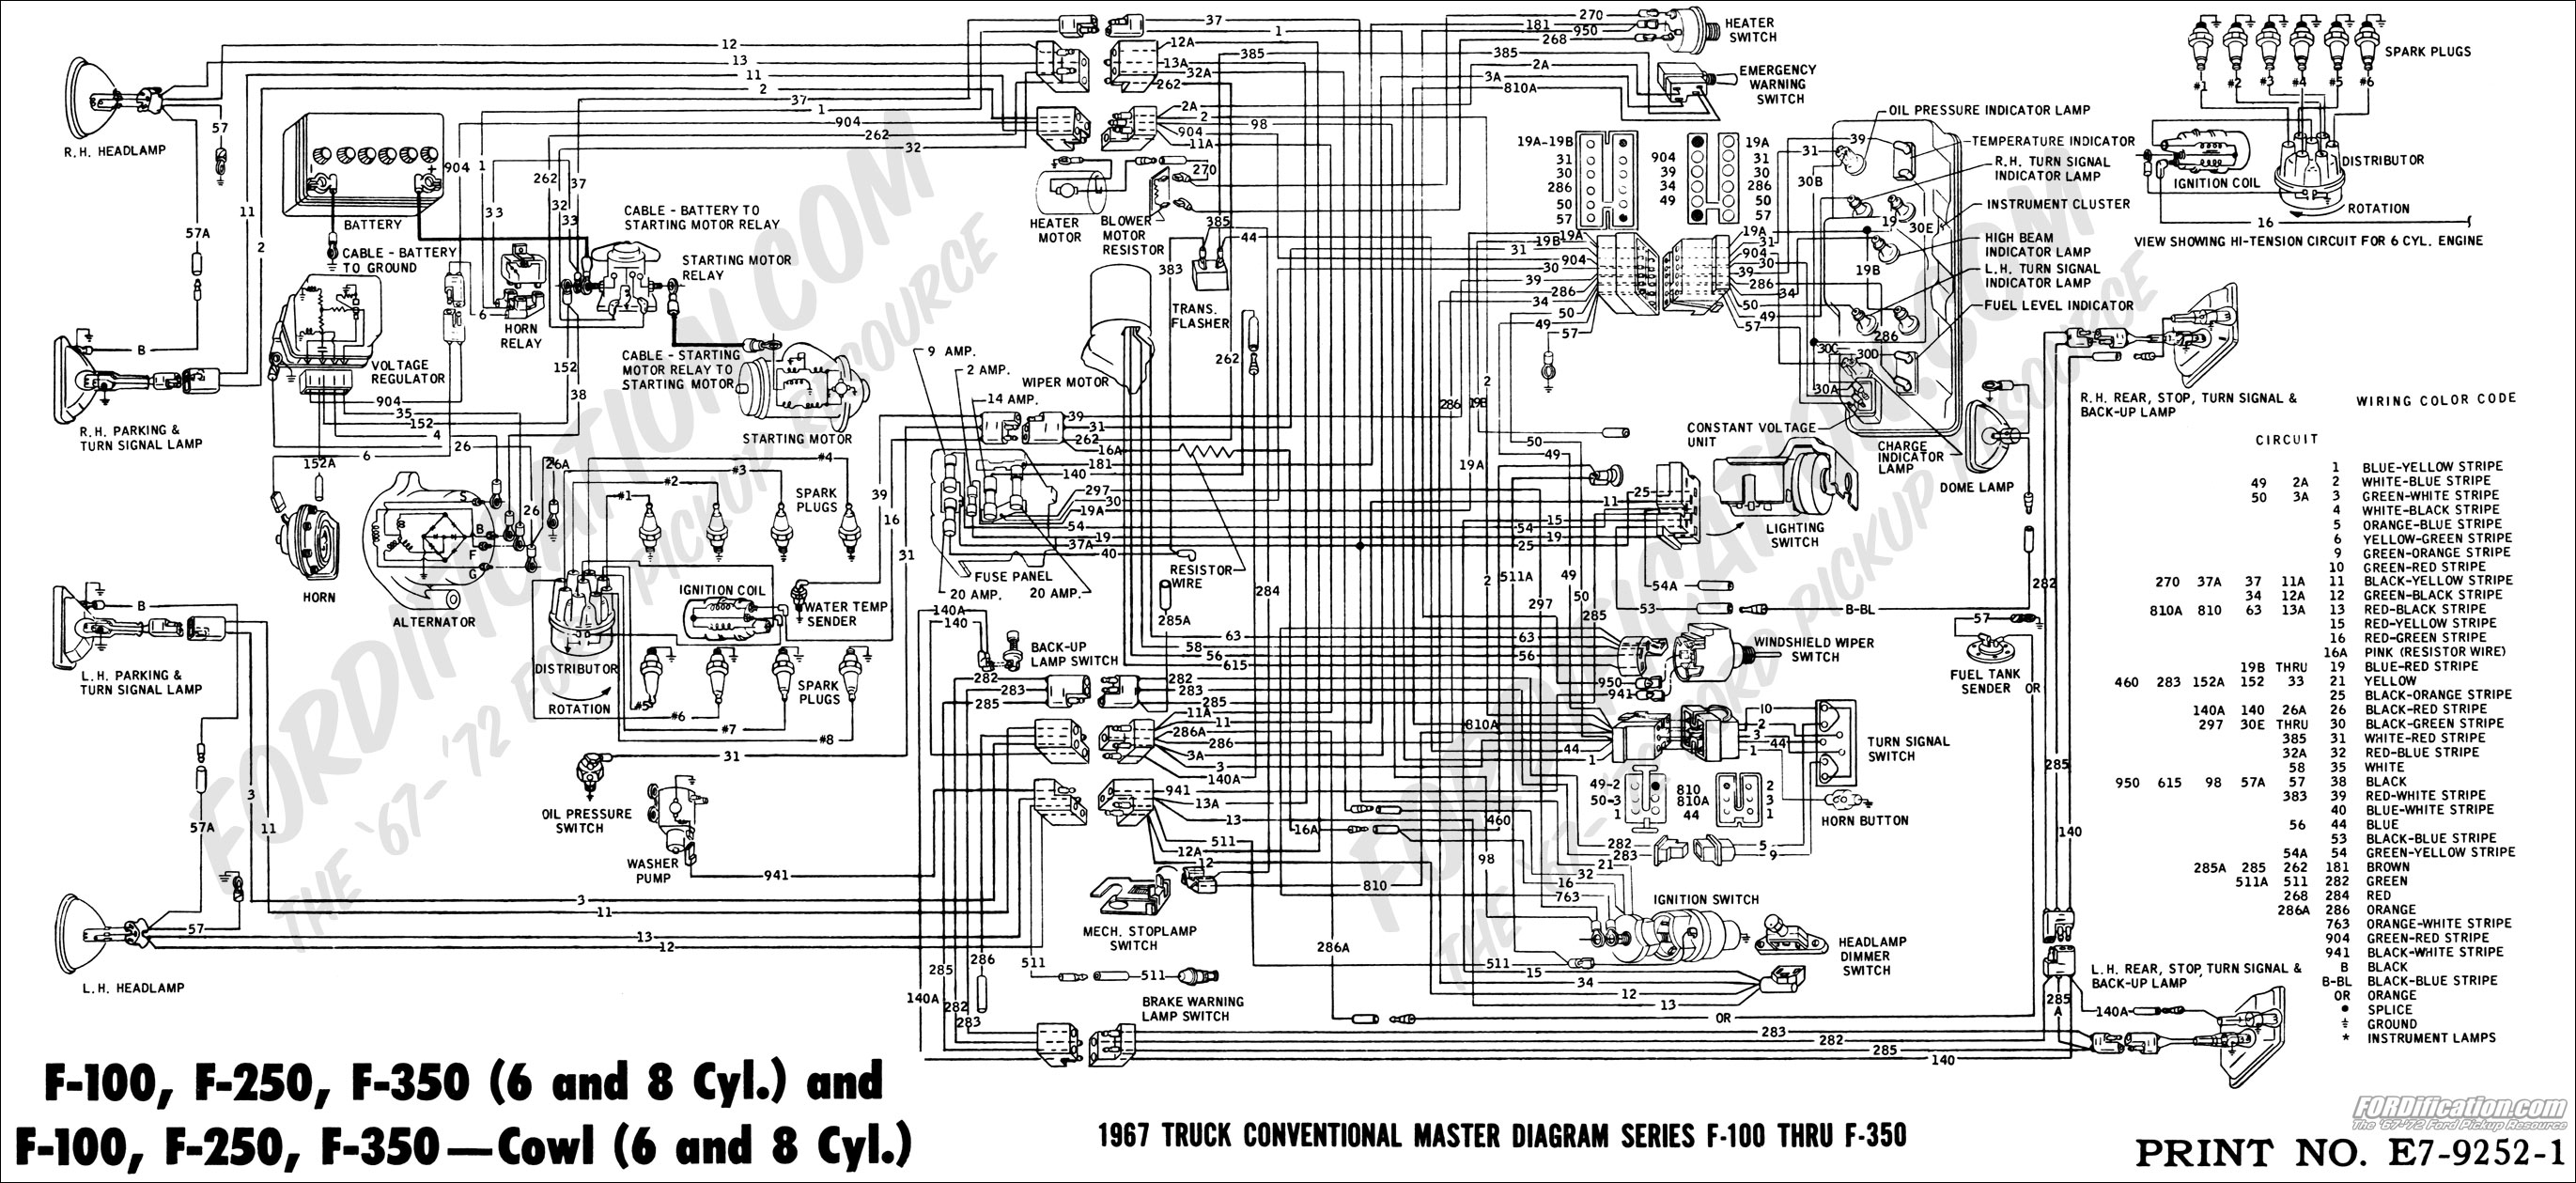 67masterdiagram ford truck technical drawings and schematics section h wiring 1998 ford f150 wiring diagram at virtualis.co